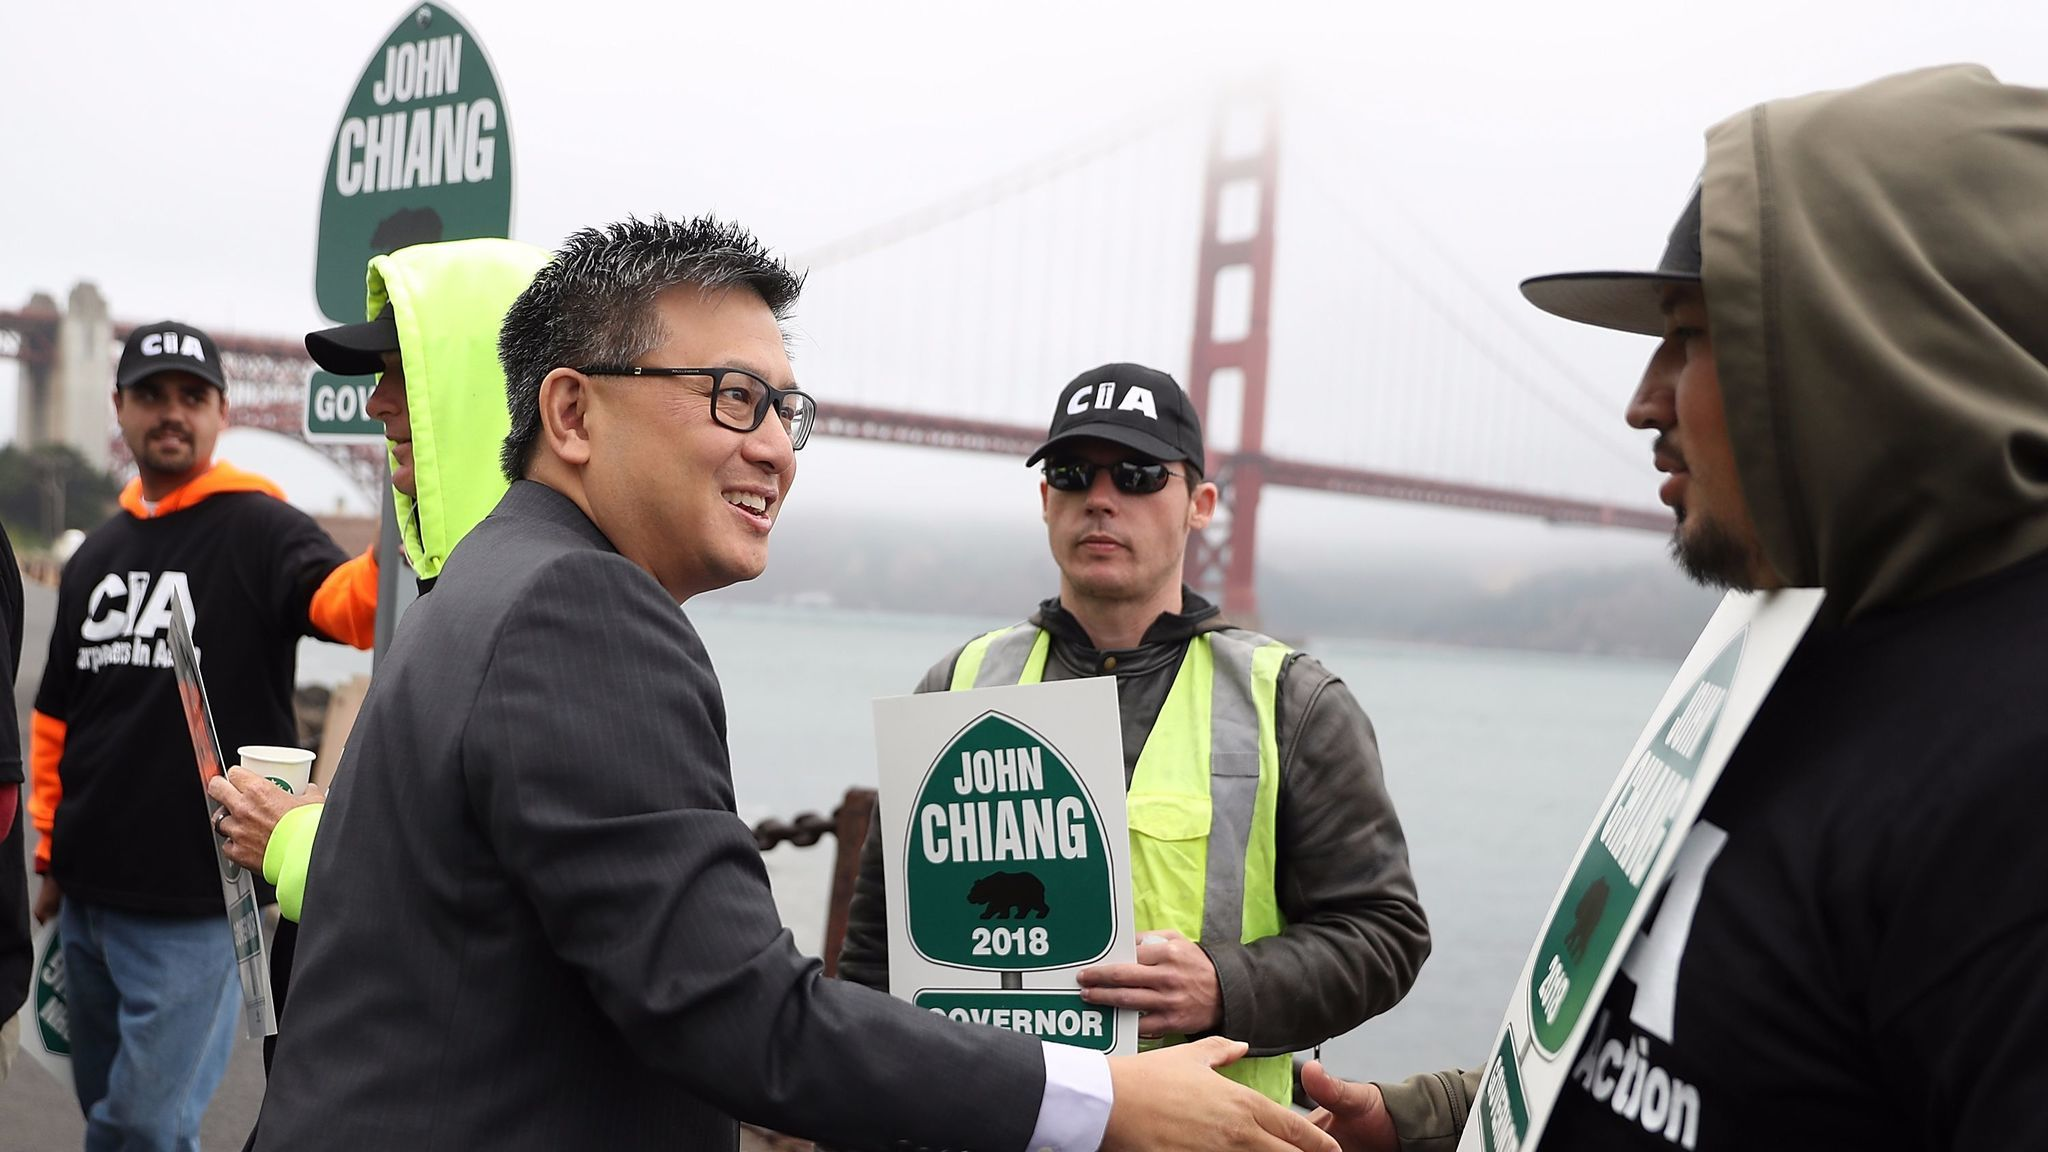 State Treasurer John Chiang, campaigning for governor near the Golden Gate Bridge on June 7, has promoted his environmental record during his eight years on the State Lands Commission as state controller.